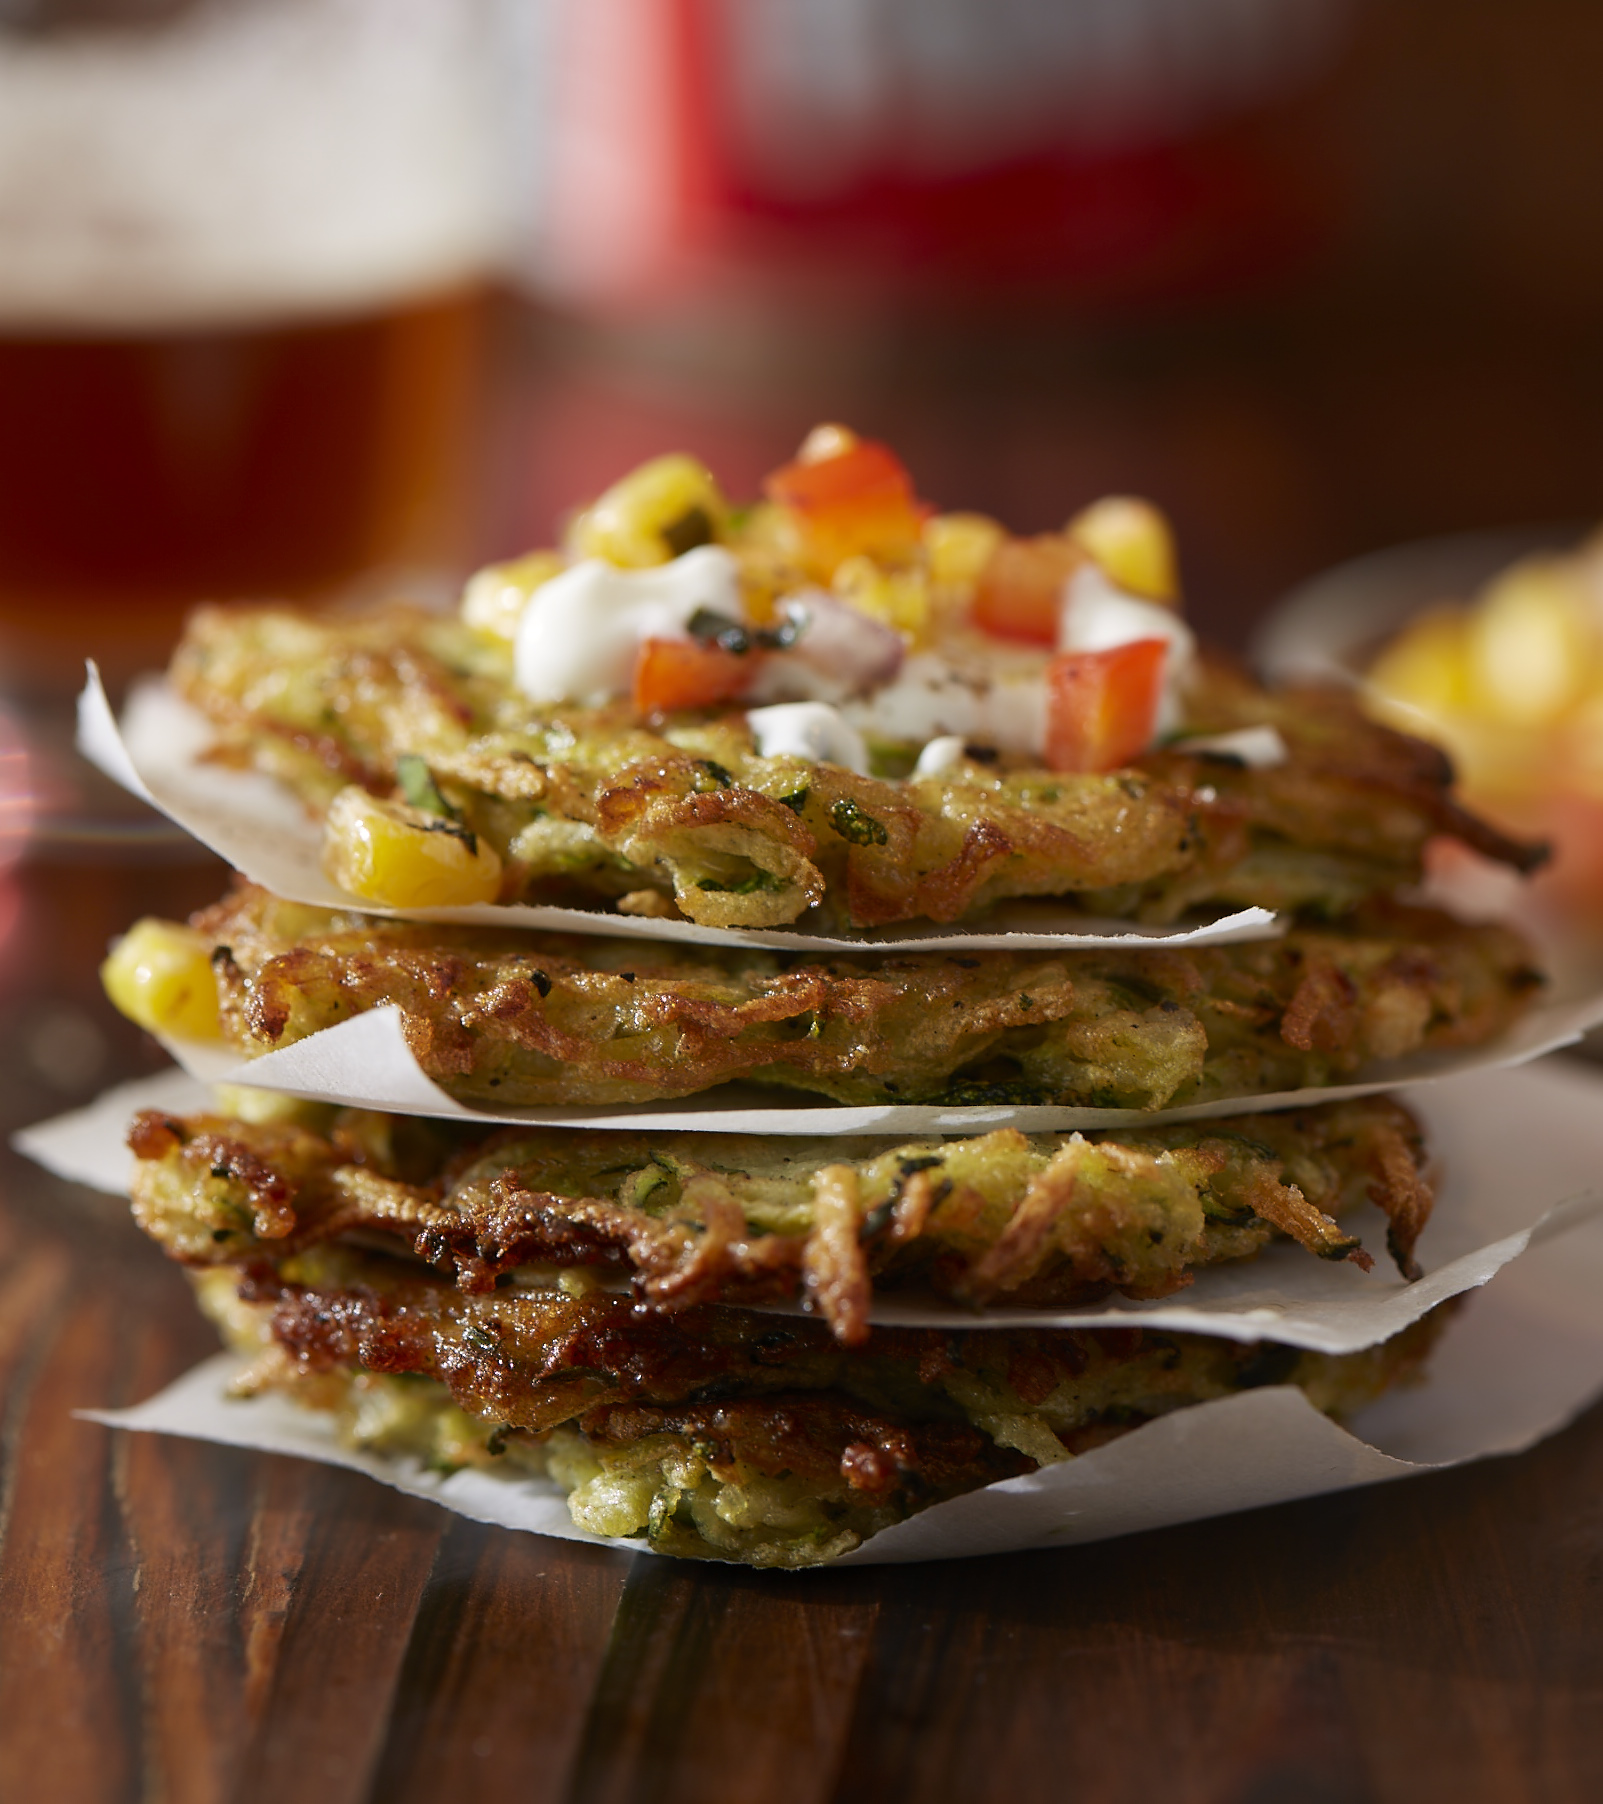 Zucchini Fritters with Succotash Salad & Cr�me Fra�che